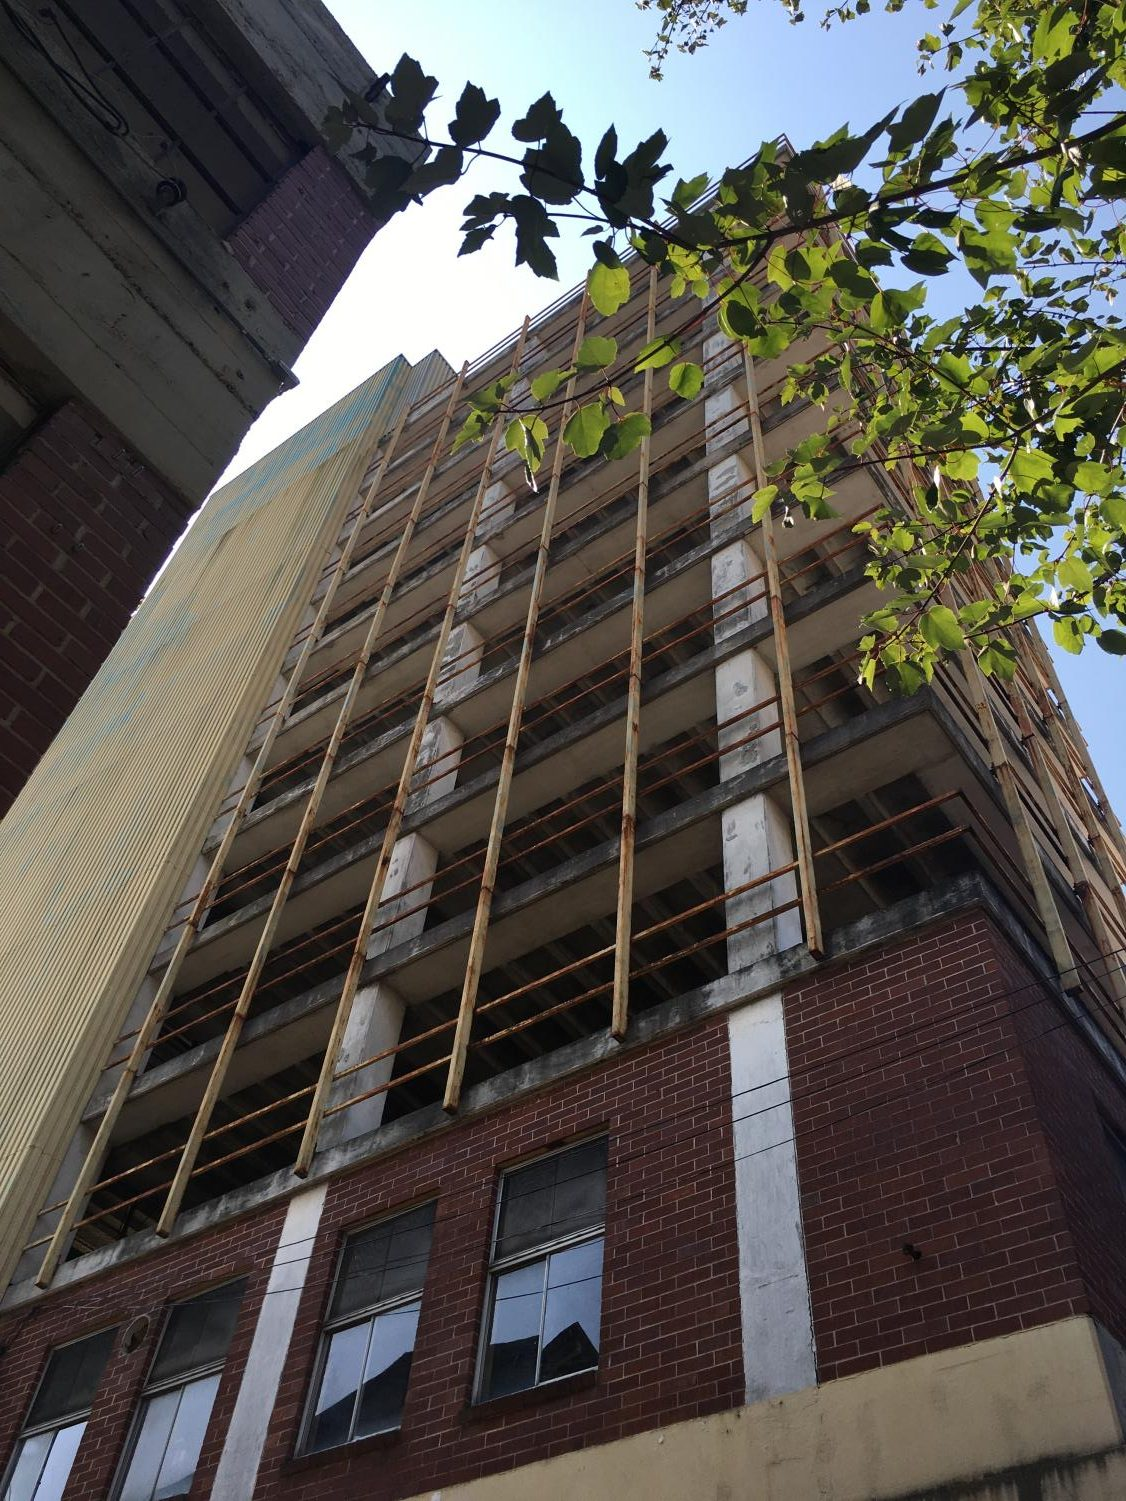 The old parking deck adjacent to the Dempsey Apartments is being put up for sale by the Macon-Bibb County Urban Development Authority for future residential or office lofts or condominiums.